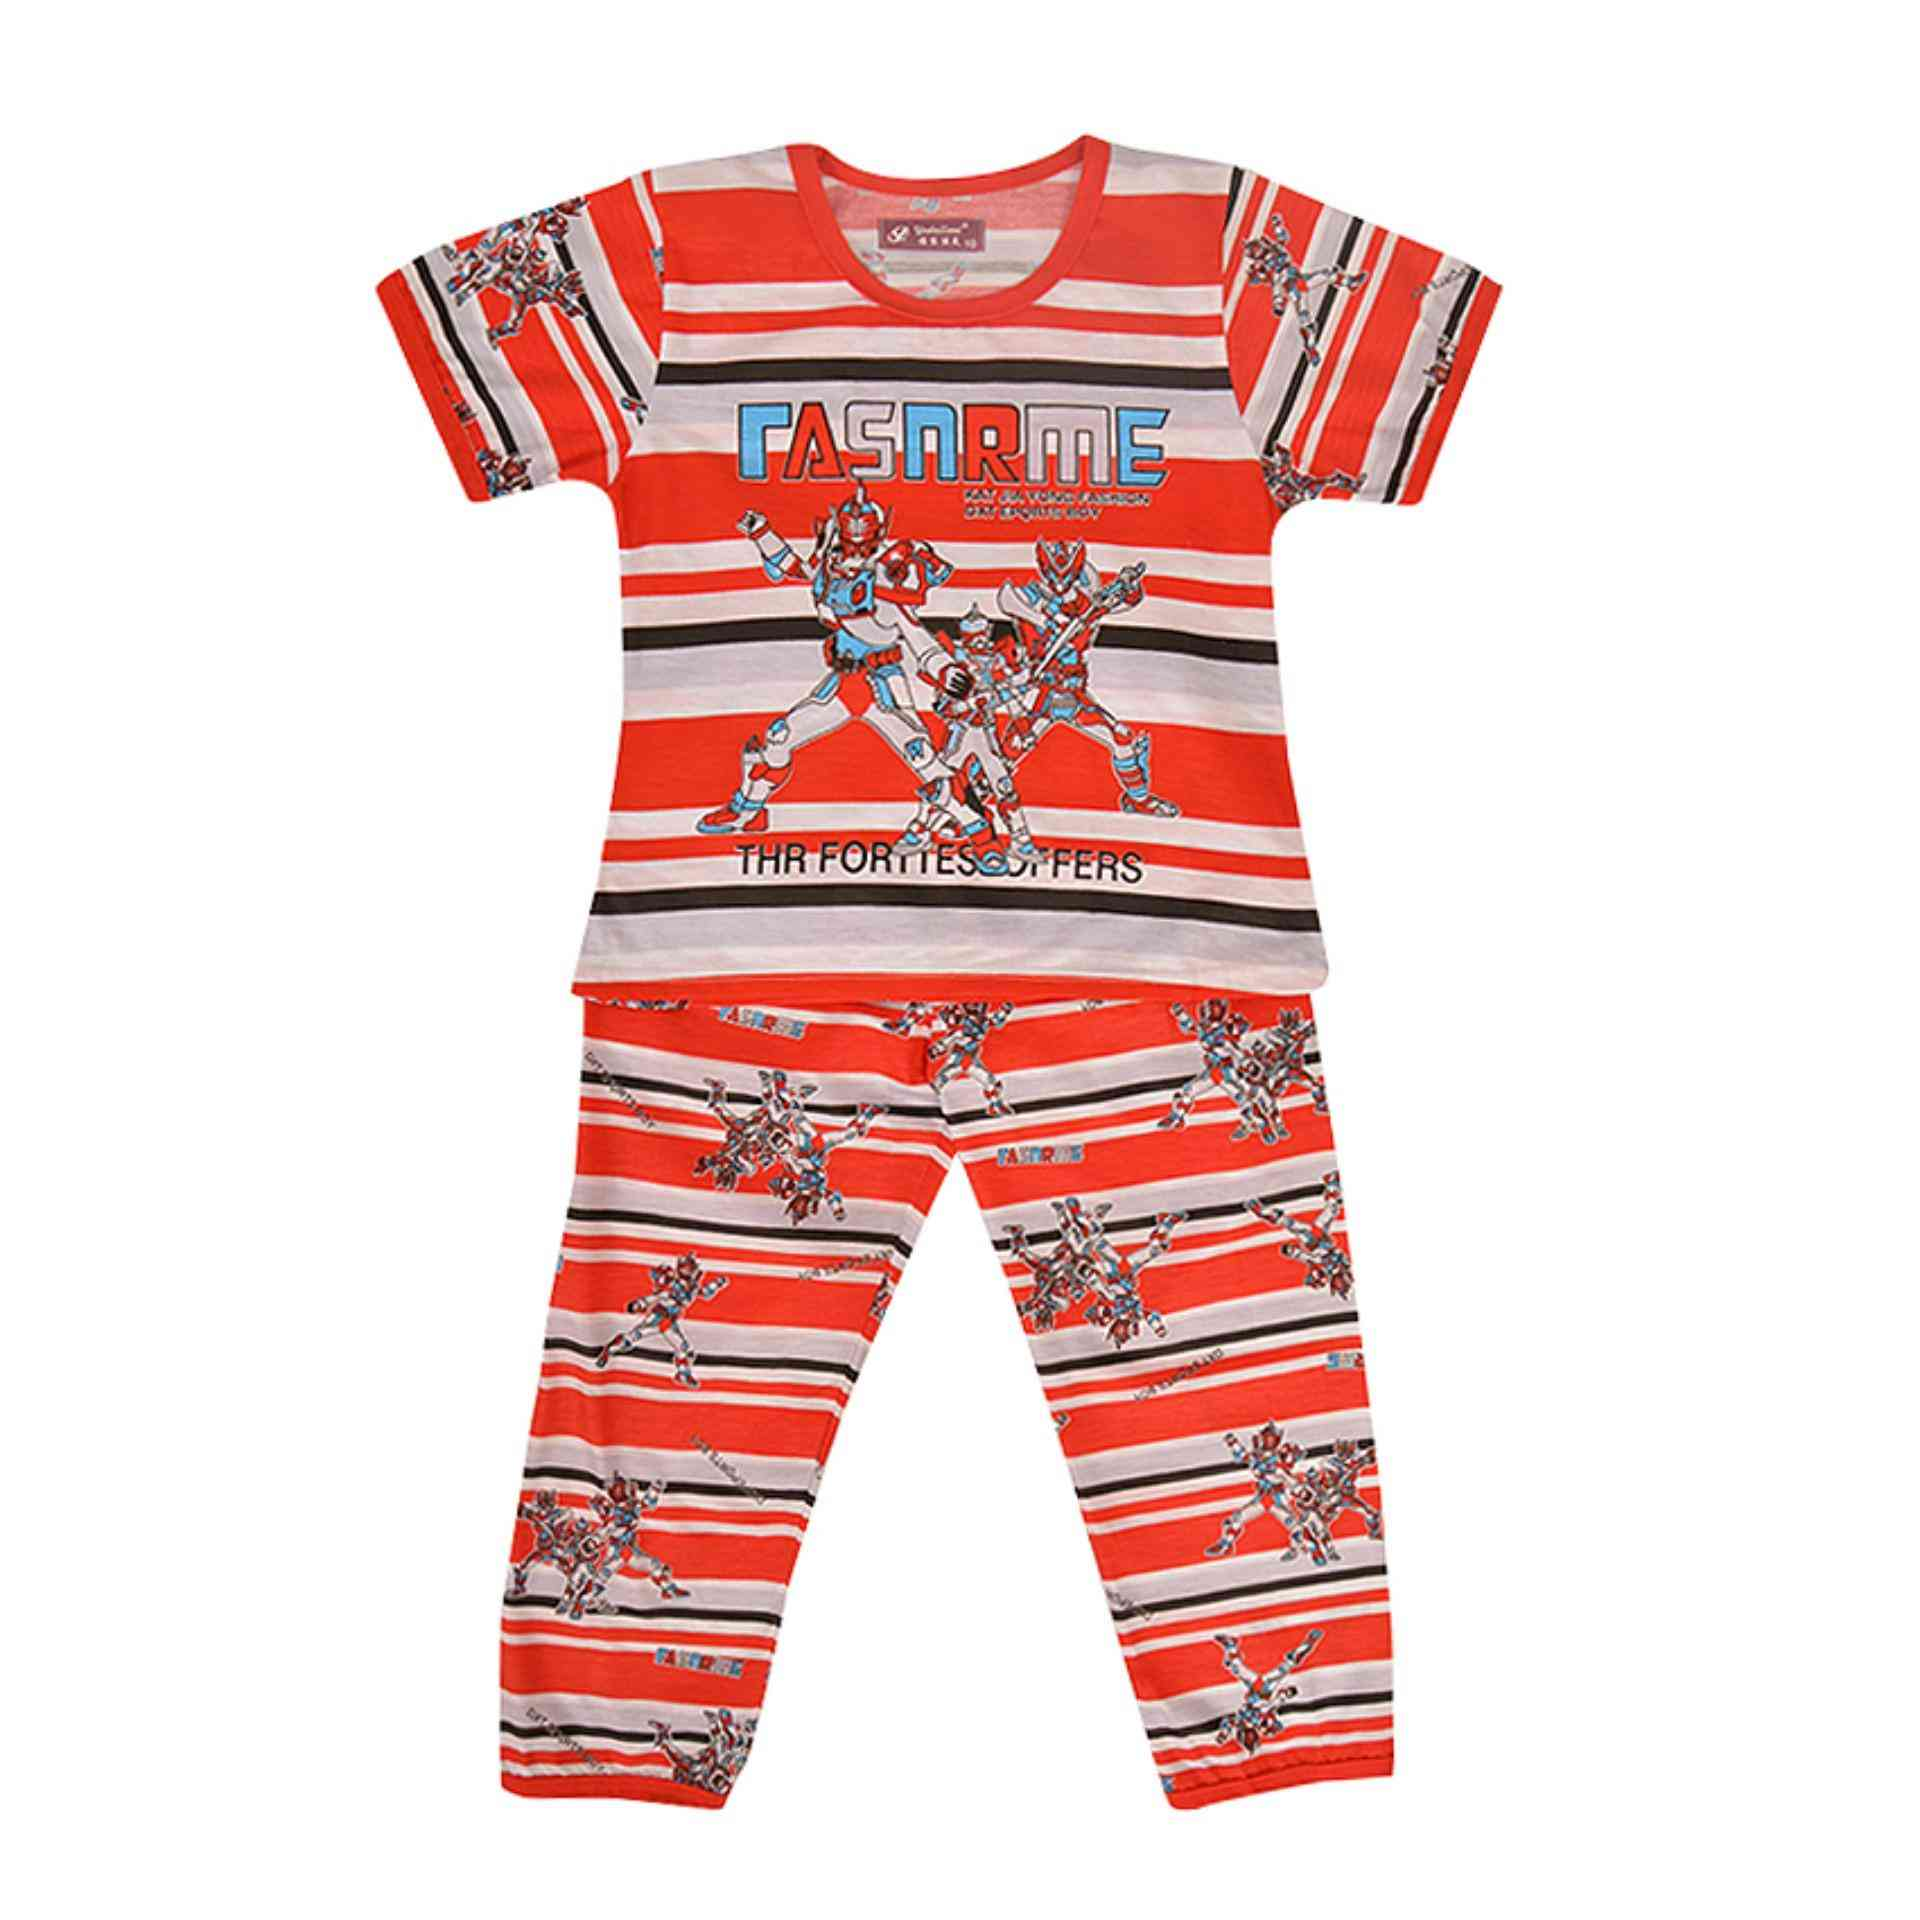 Pack of 2 Pure Cotton Night Suit (Pajama + Tshirt) for Girls - Transformers